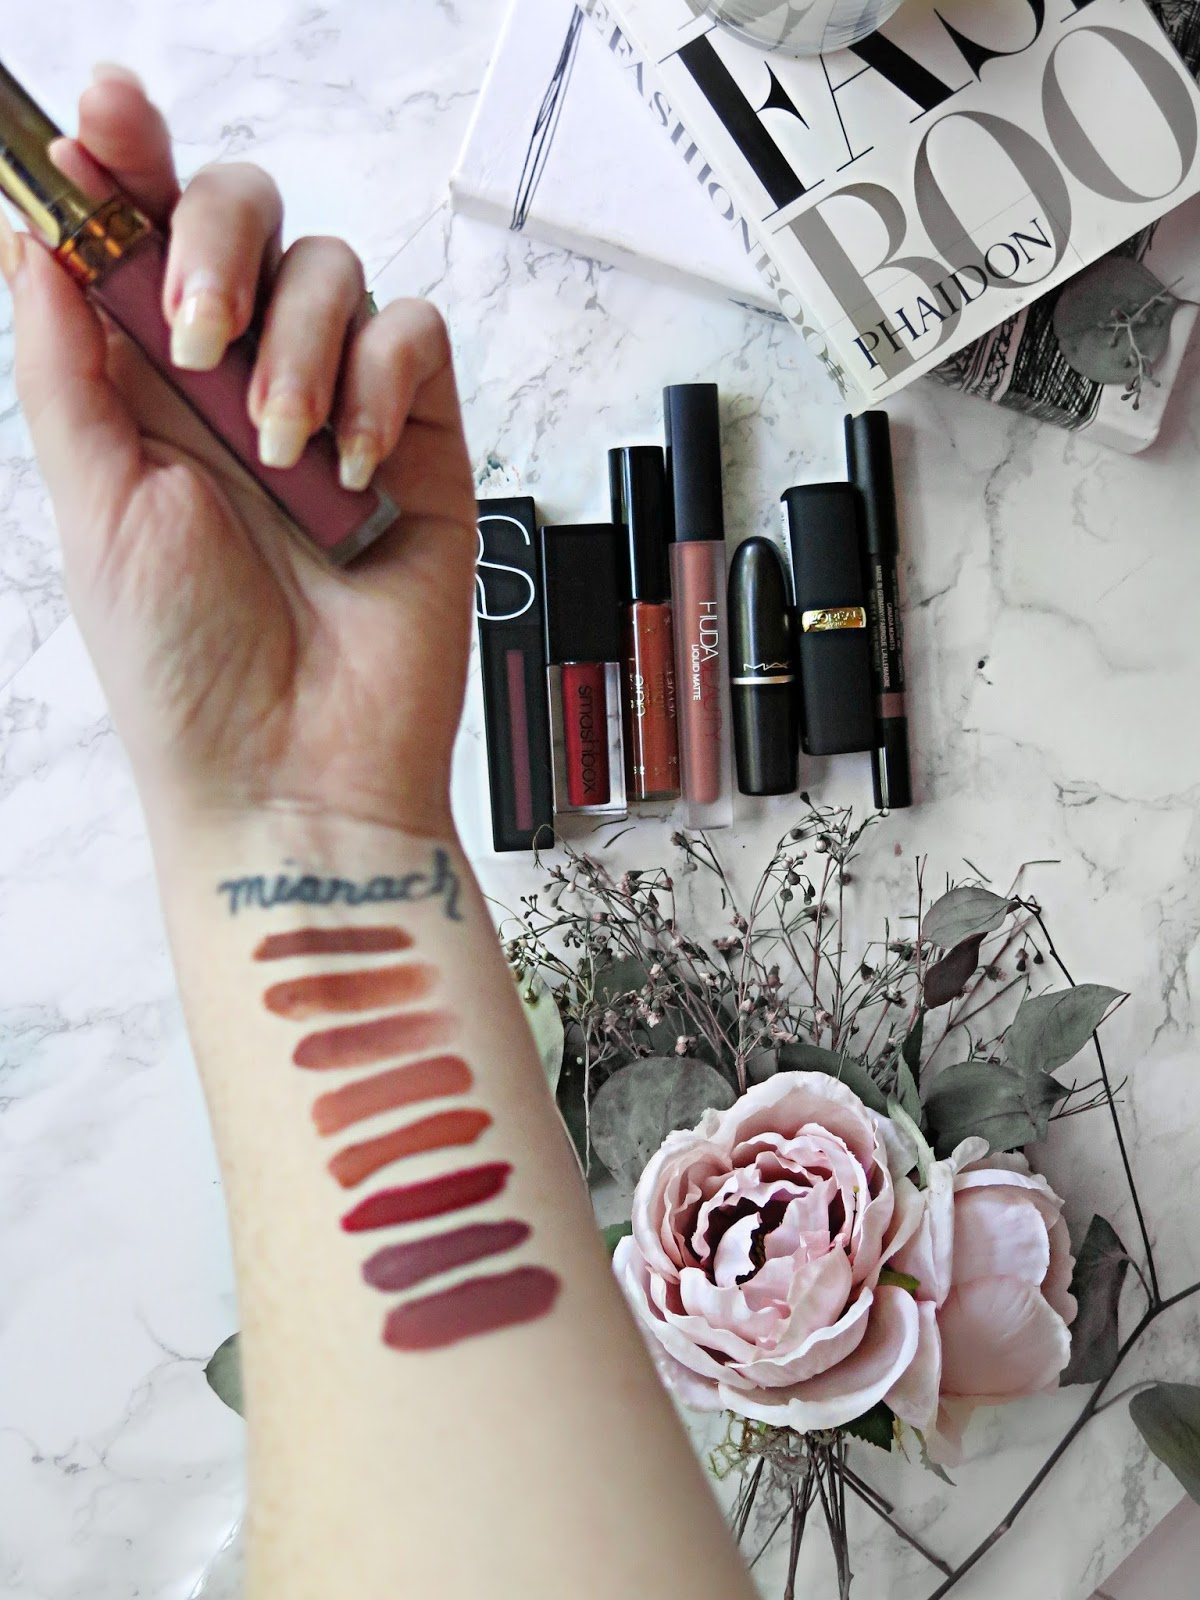 Moody Lip Lifestyle | Top 8 Must Have Warm Toned Fall Lipsticks | Comparisons, Suggestions & Swatches | labellesirene.ca